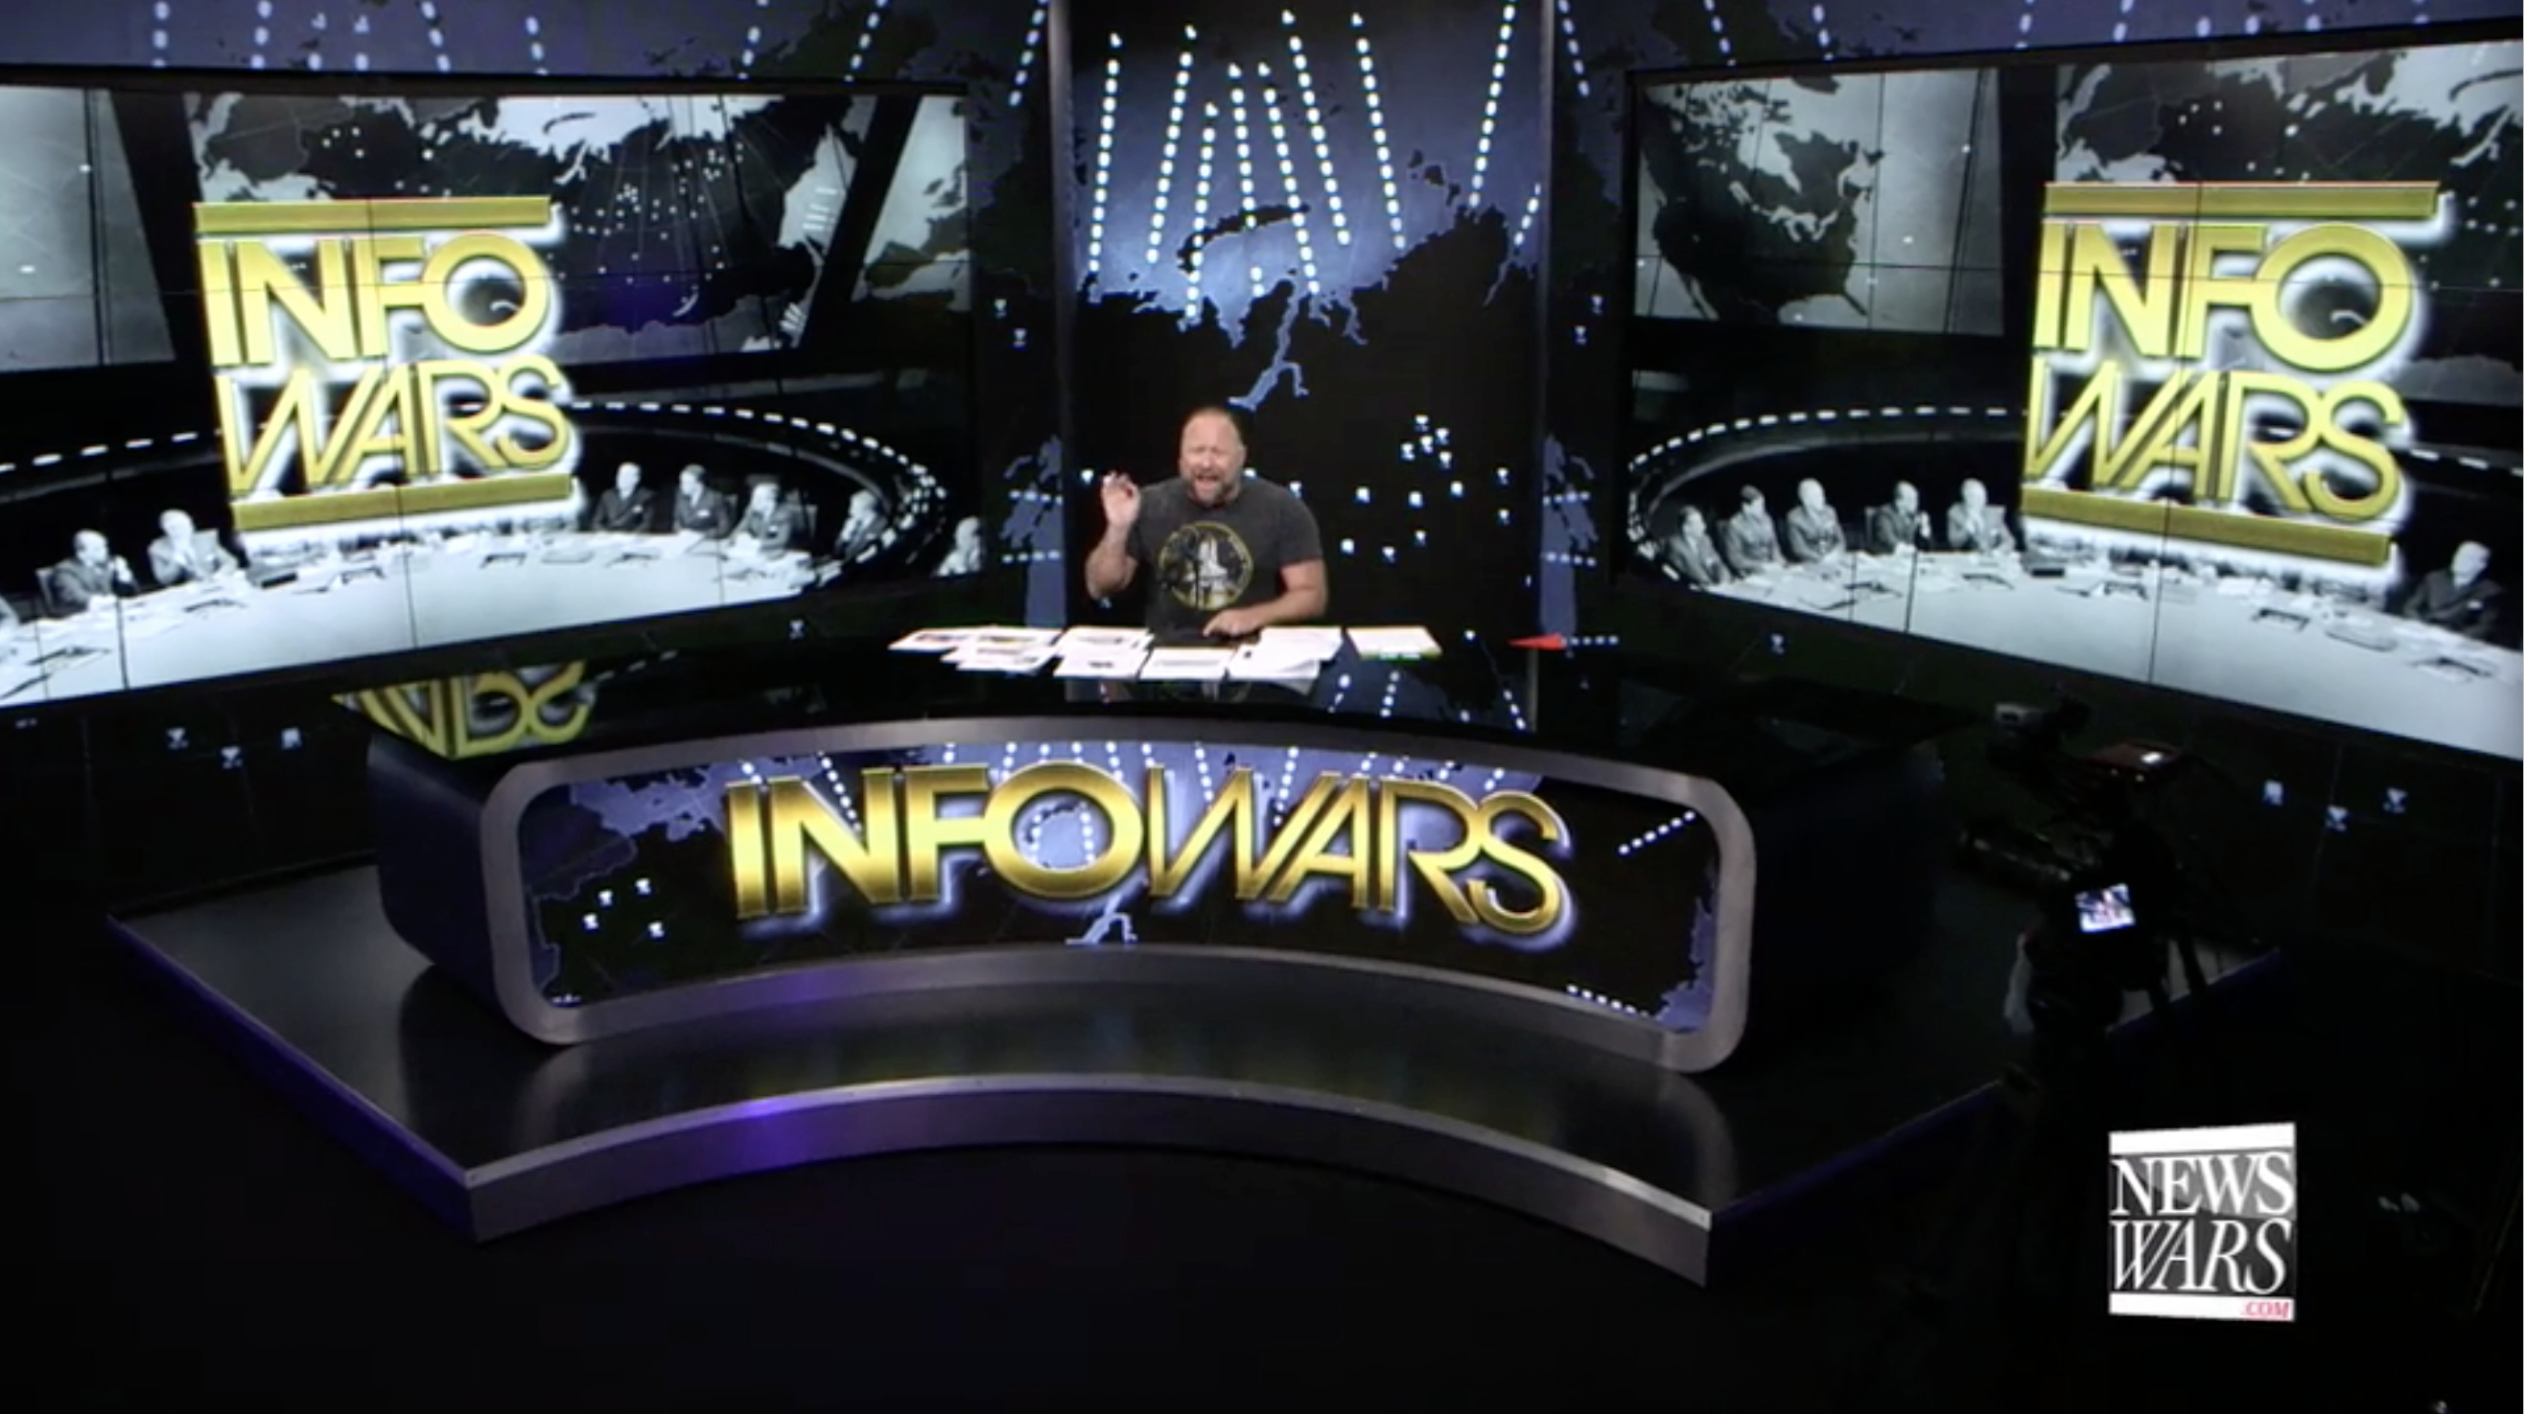 Alex Jones Infowars Studio EXZM September 23rd 2020